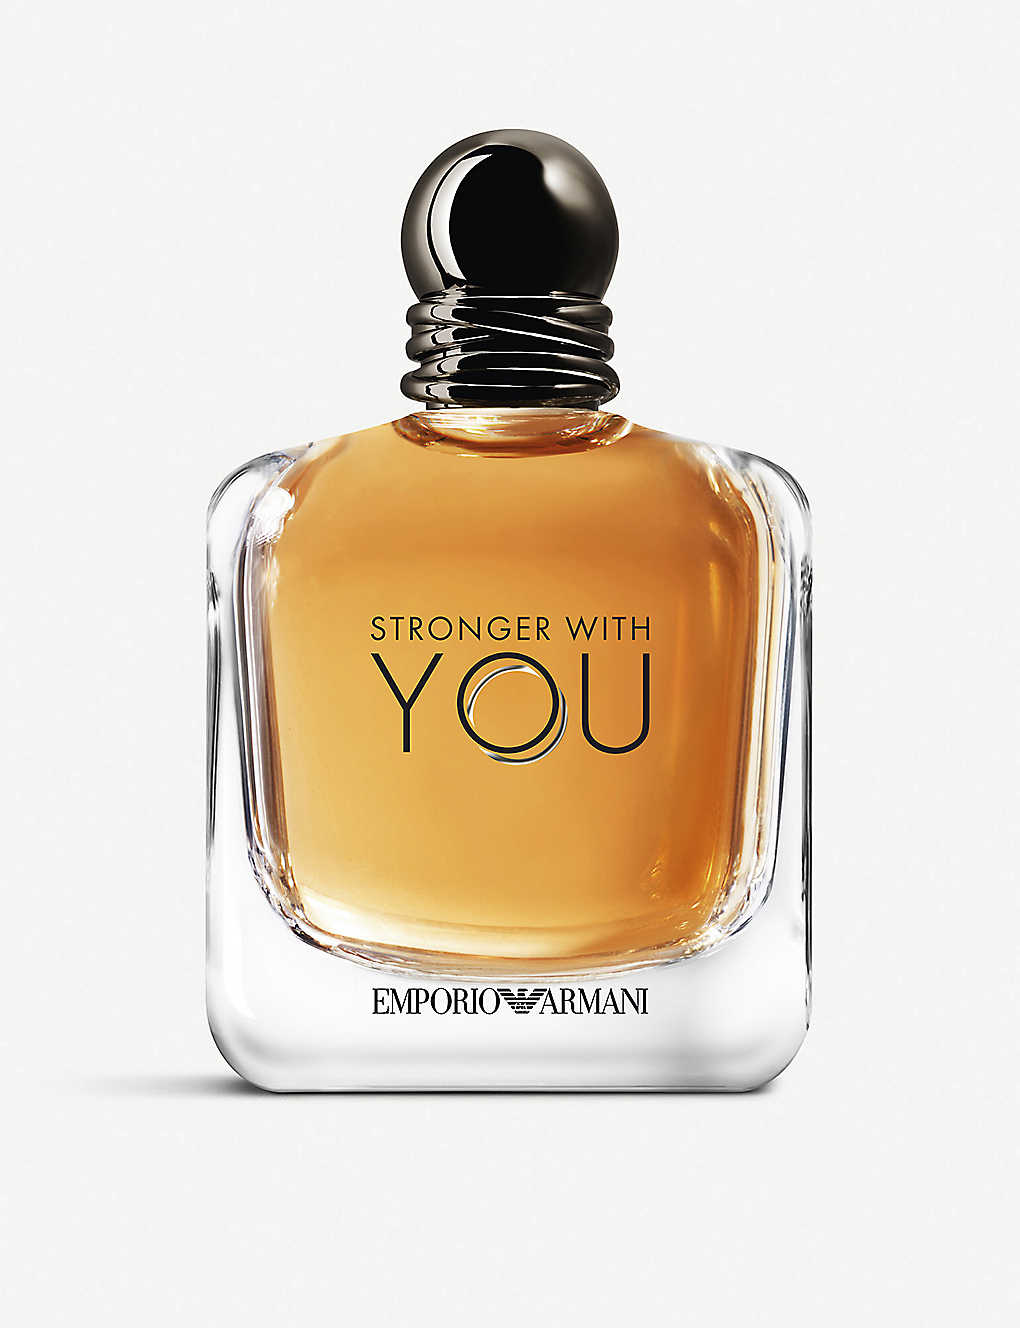 888353c978e1e EMPORIO ARMANI - Stronger With You eau de toilette 150ml ...